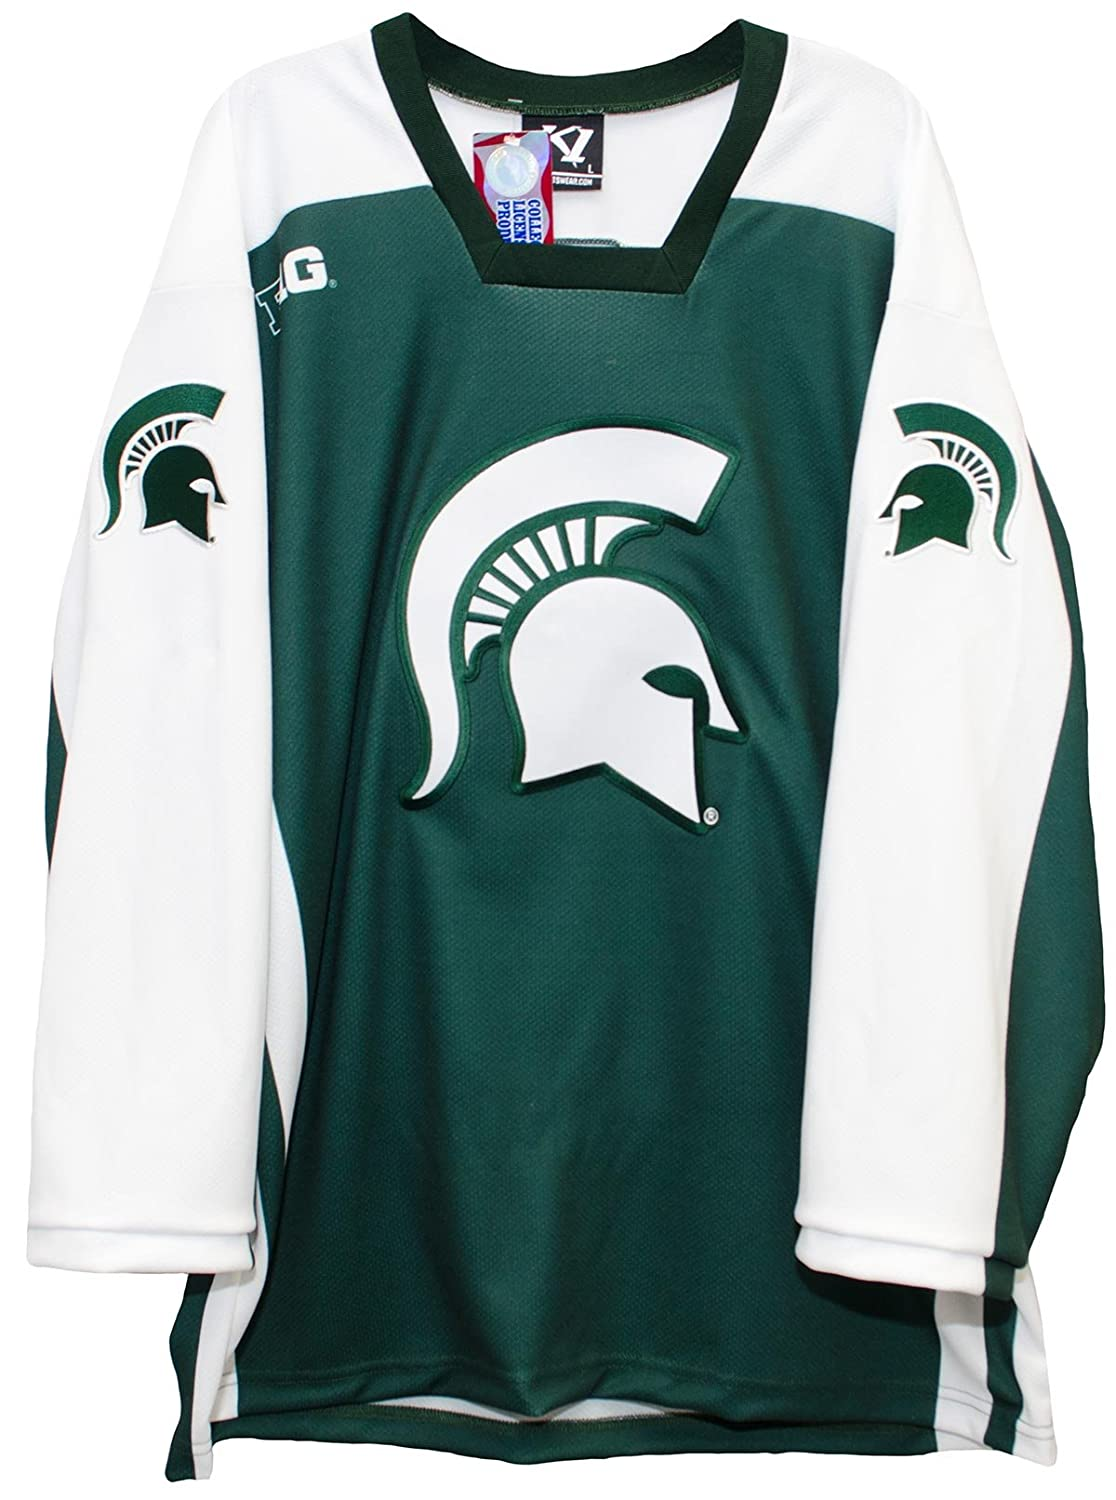 0287fcf2c Amazon.com   K1 Sportswear Michigan State Spartans Men s Hockey Jersey    Sports   Outdoors